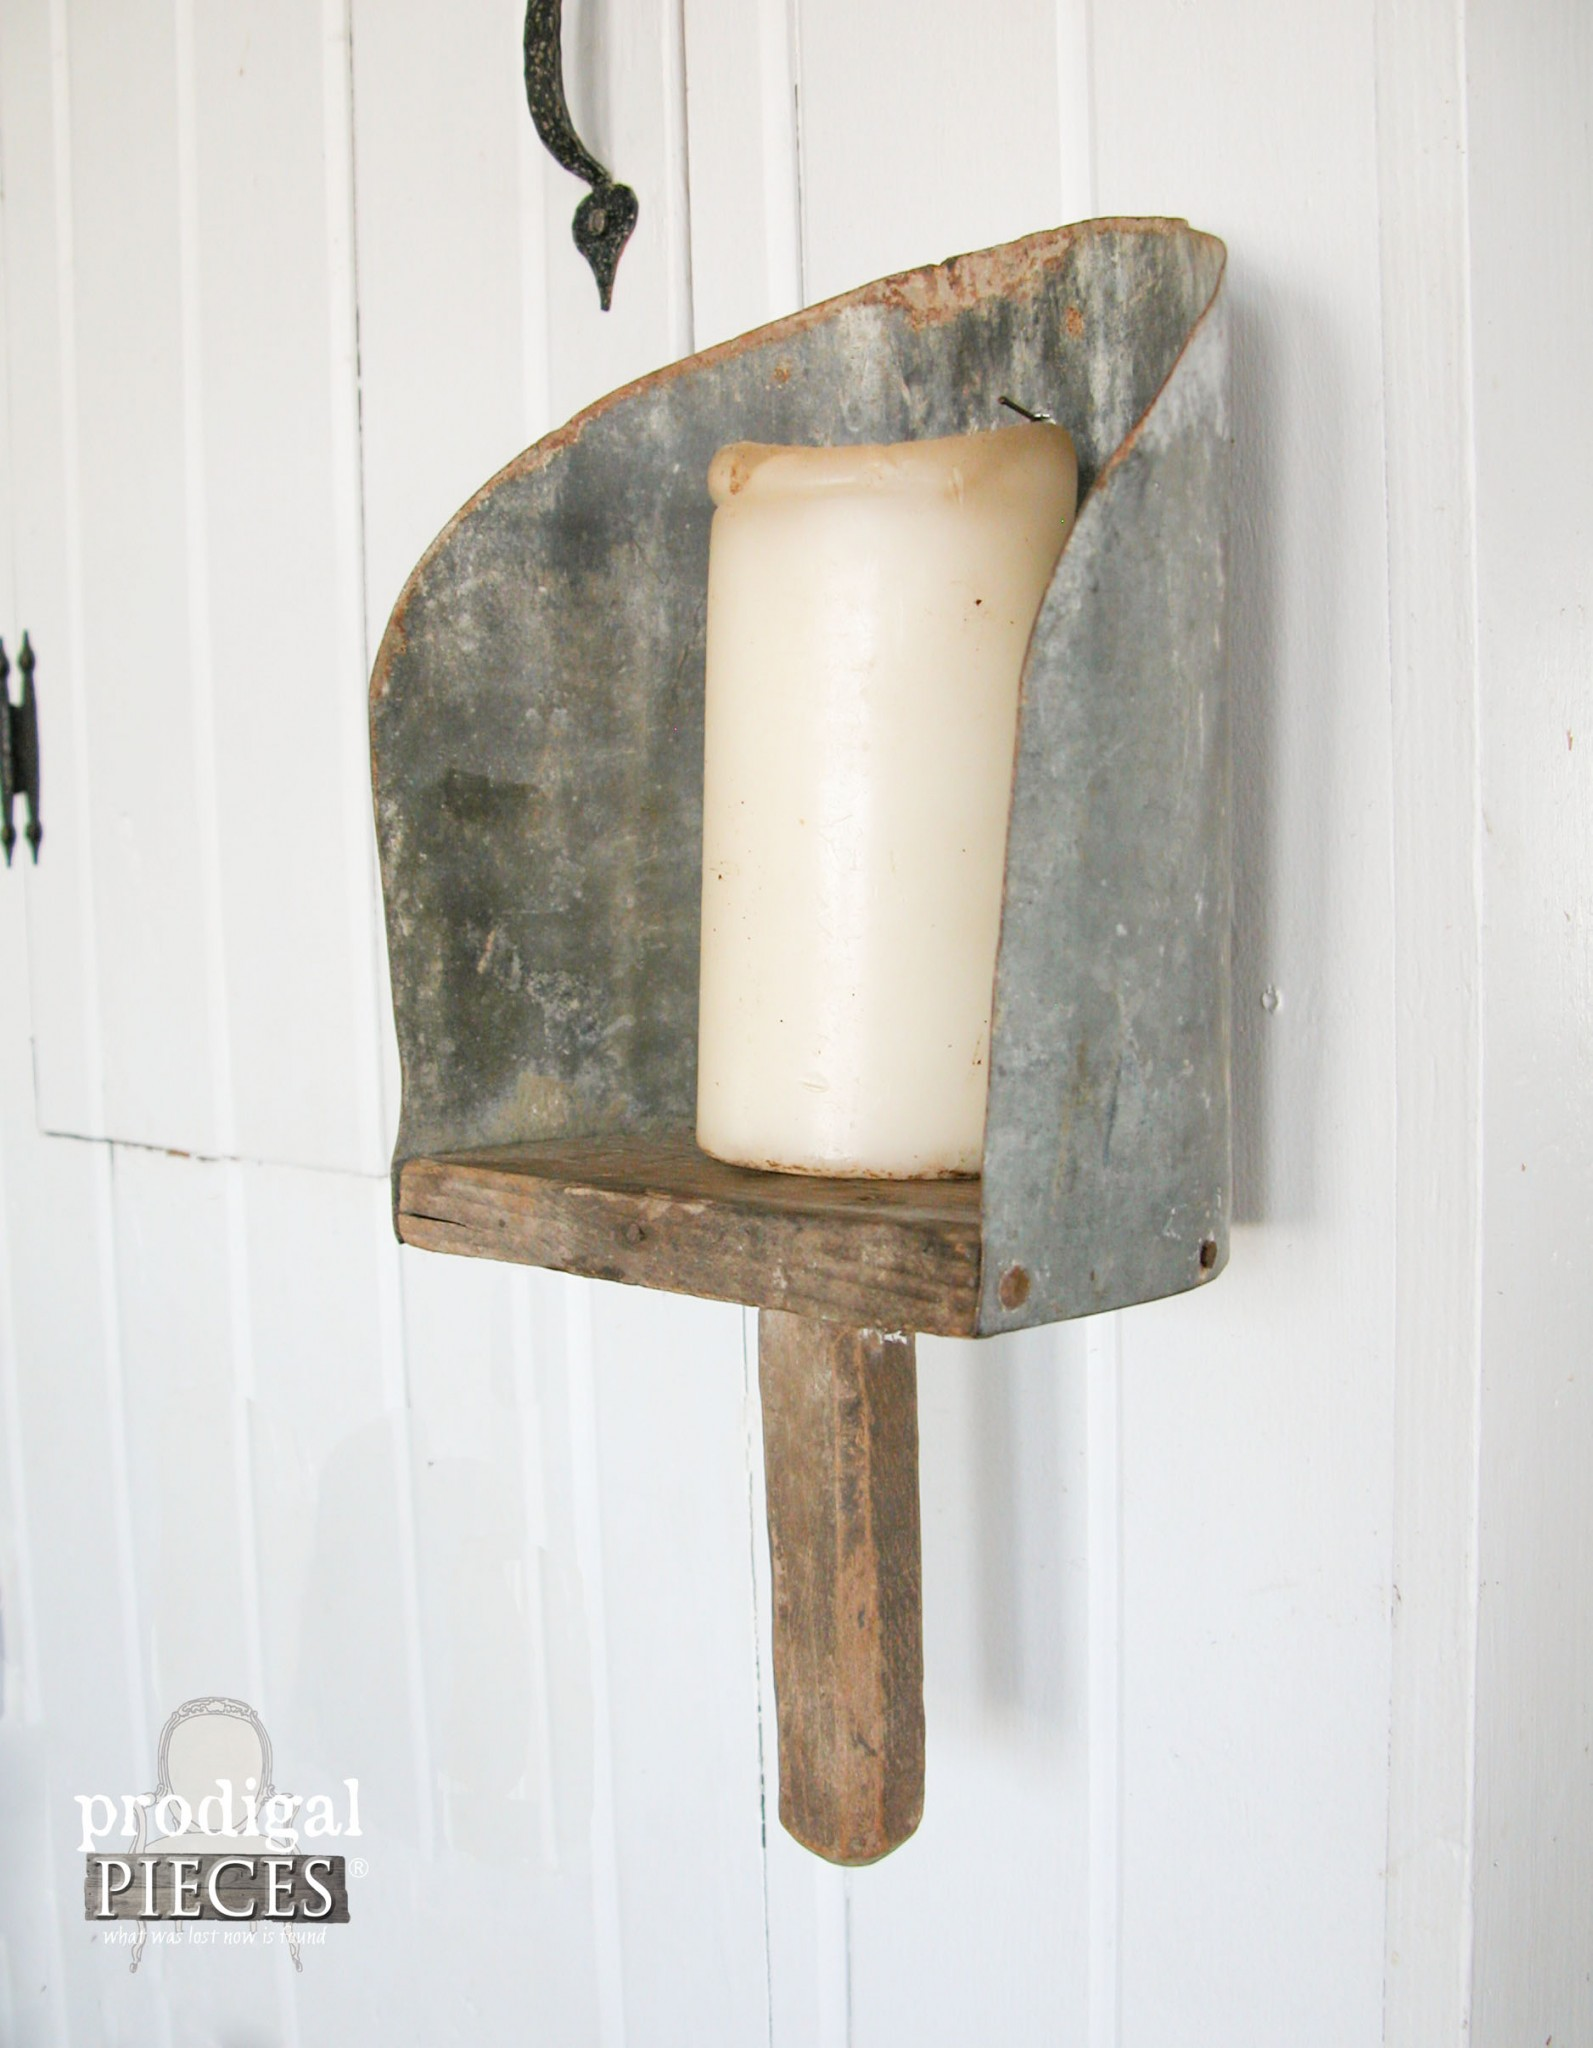 Side view of Repurposed Farmhouse Feed Scoop Candle Sconce by Prodigal Pieces | www.prodigalpieces.com